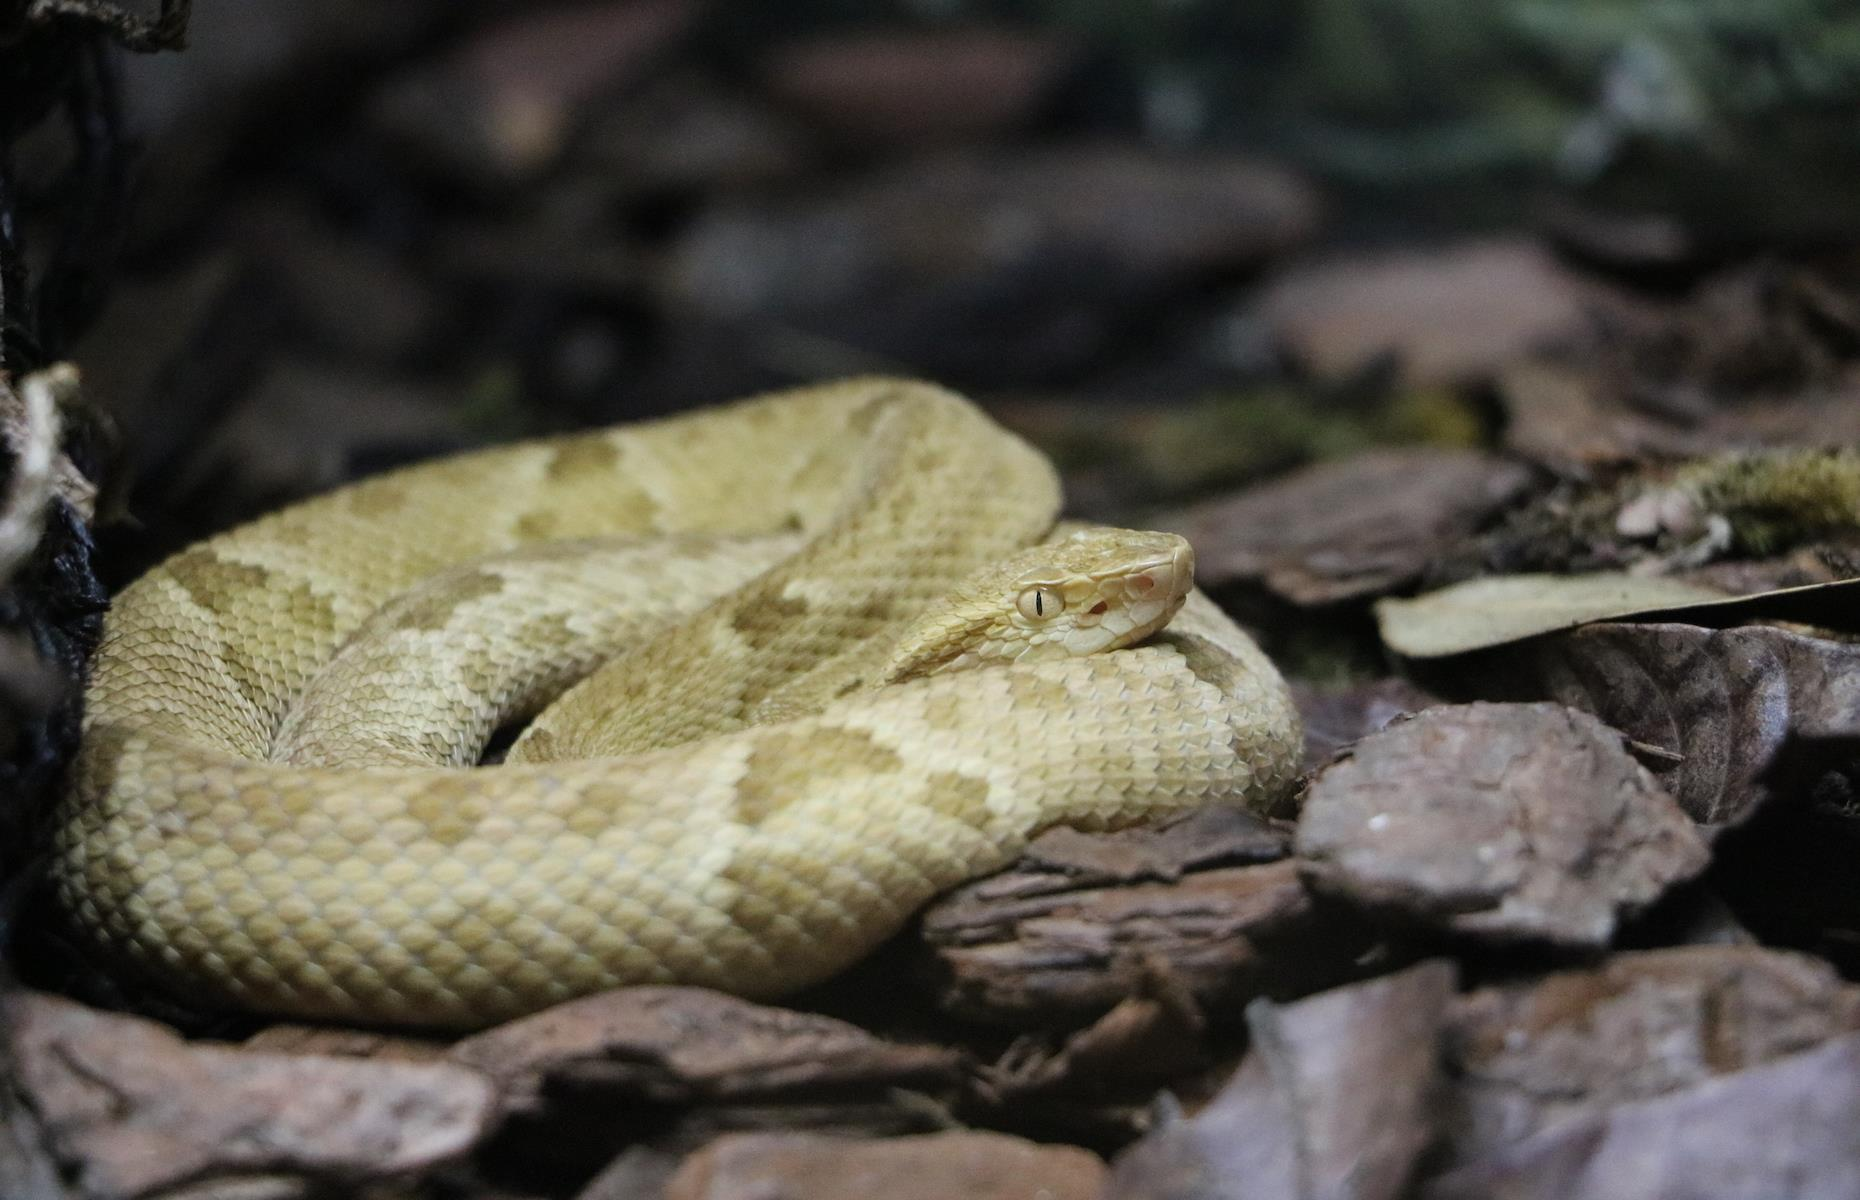 """Slide 24 of 51: Aptly nicknamed """"Snake Island"""", the Ilha da Queimada Grande is home to around 4,000 venomous vipers – that amounts to approximately one snake per 10 square feet(1sqm). The bite of the golden lancehead (or Bothrops insularis), that can only be found here, is deadly. The Brazilian government has therefore banned visitors from the island. Only the navy is allowed to access it. Check out more abandoned islands the world forgot."""